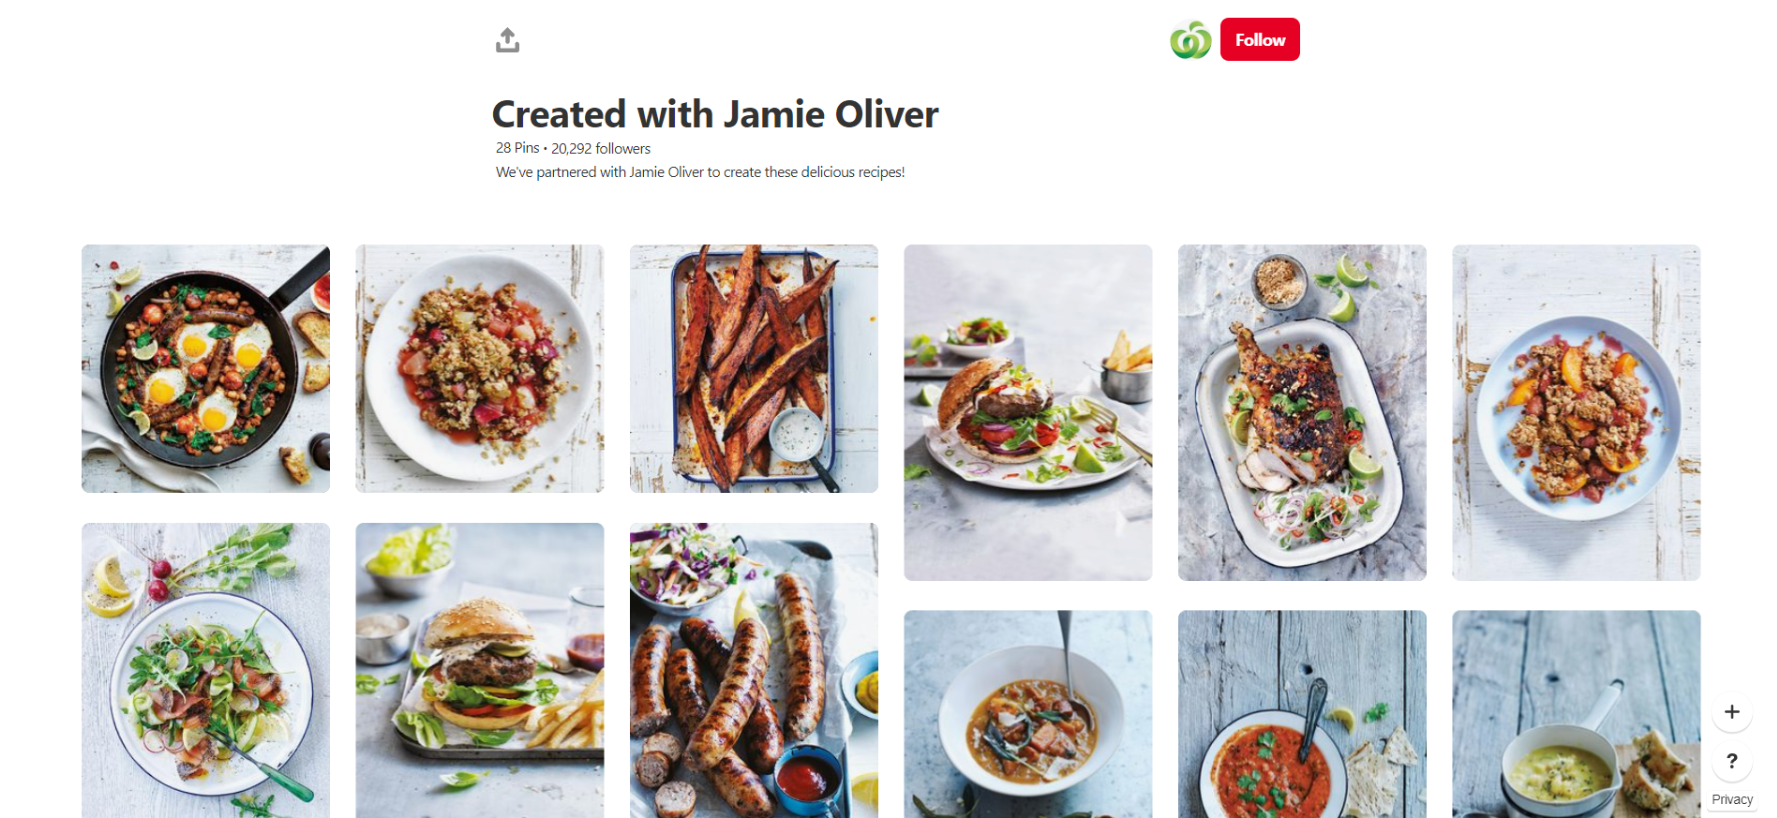 Woolworths is one of the most beautiful food profiles on Pinterest